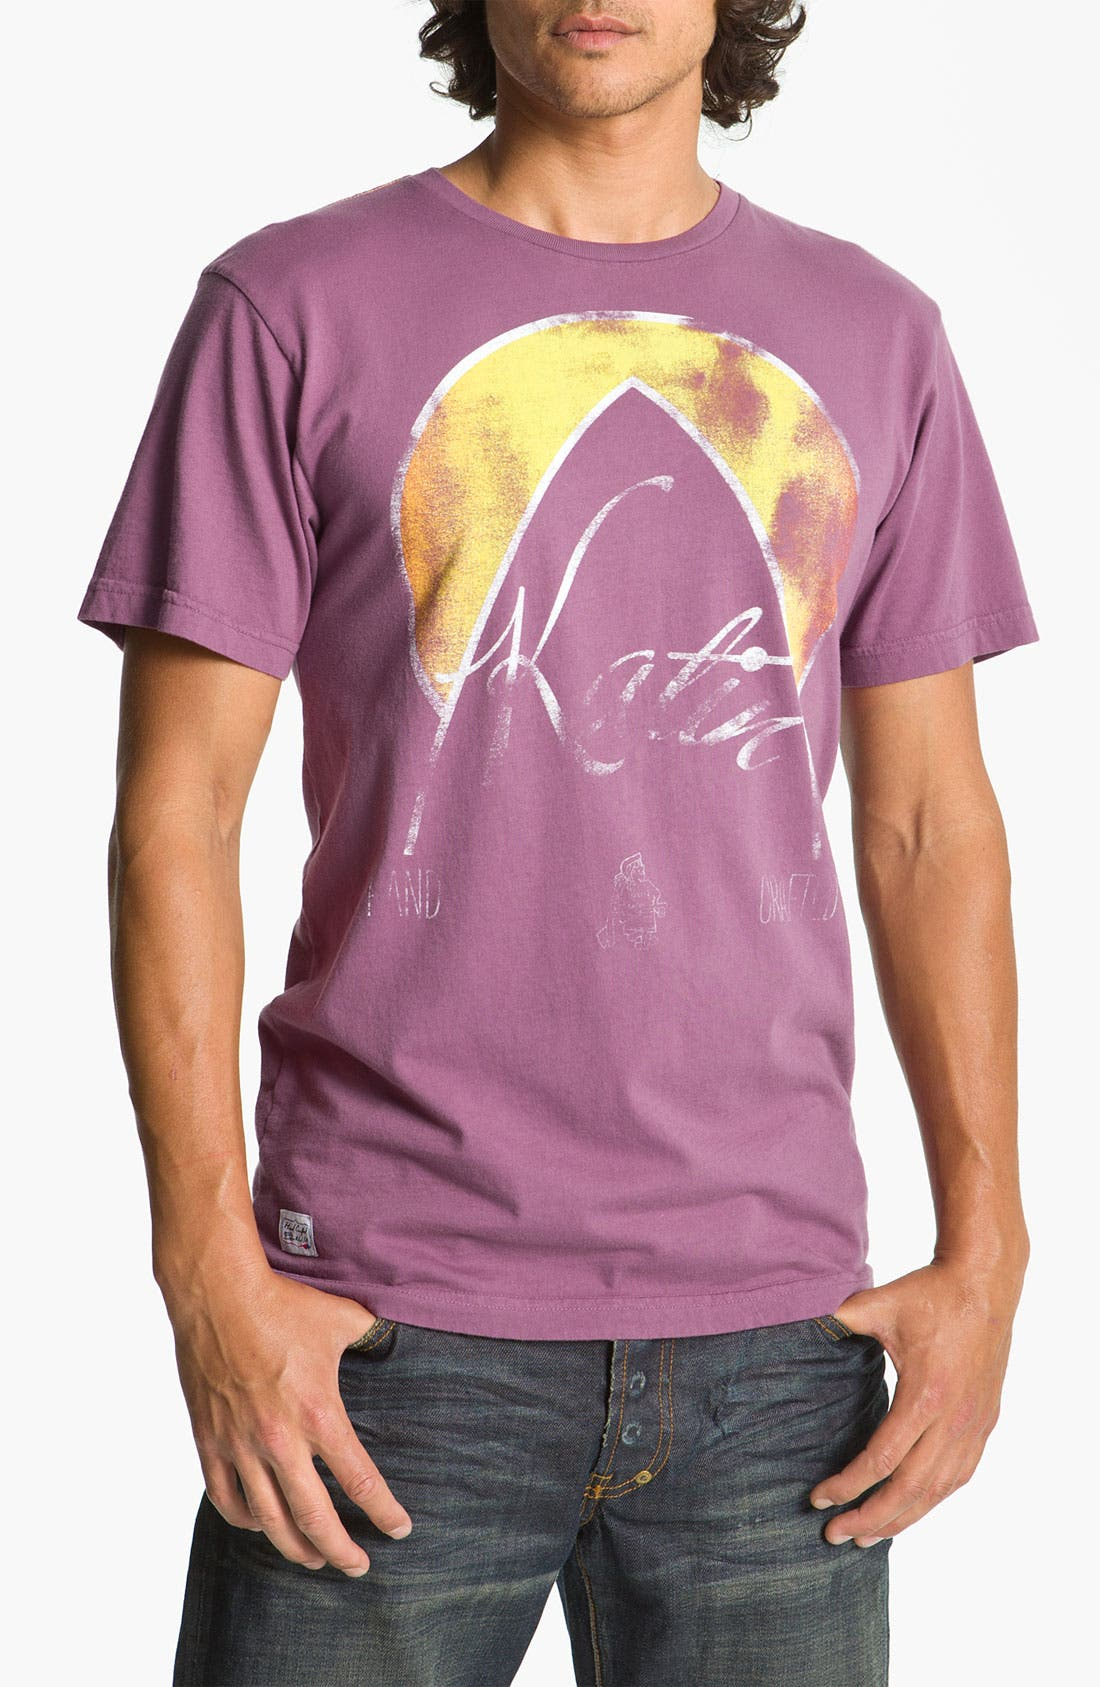 Alternate Image 1 Selected - Katin 'Nose' Graphic T-Shirt